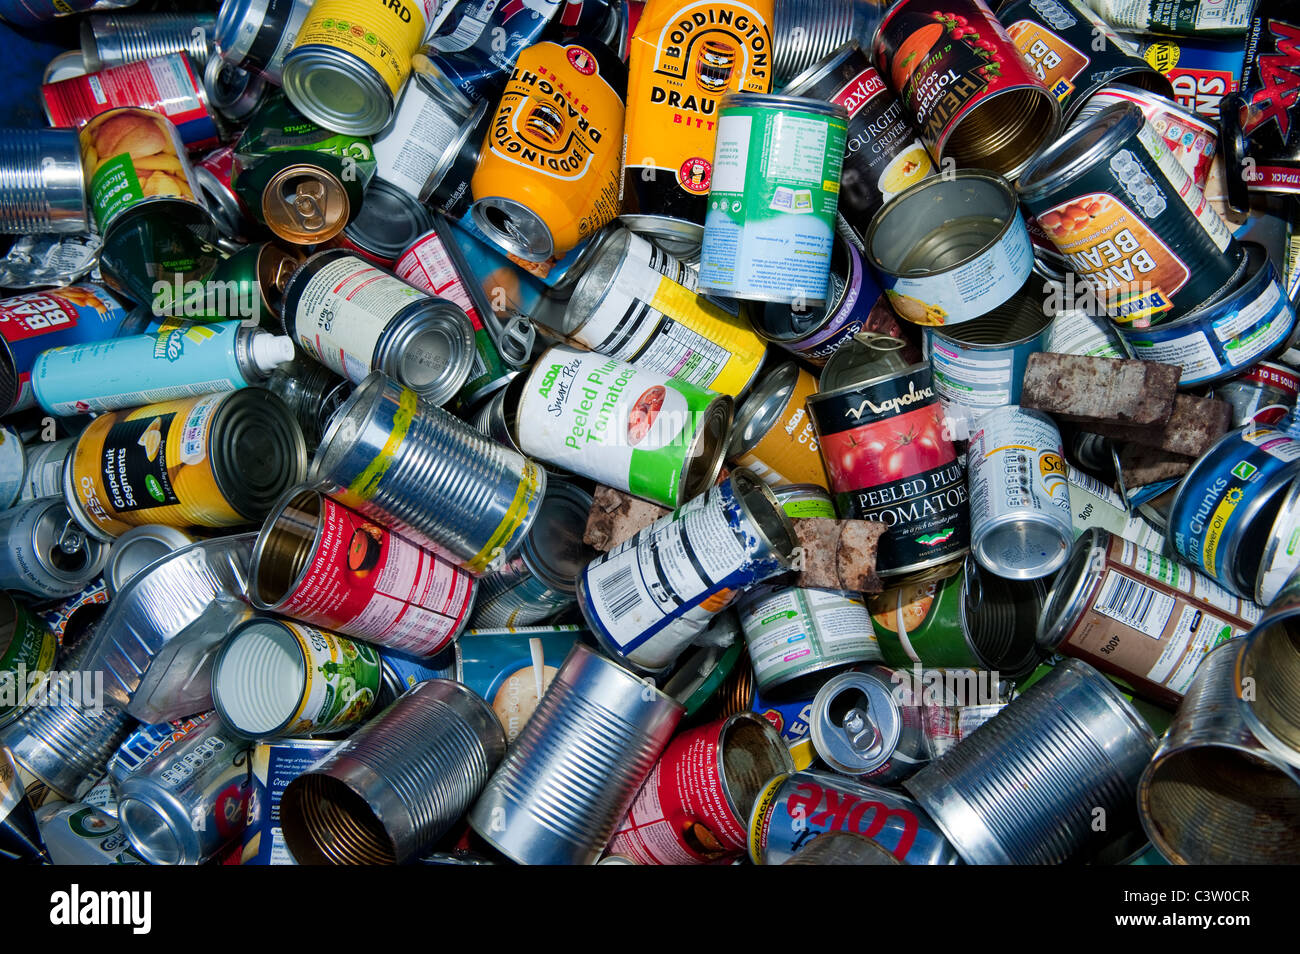 Aluminum cans in recycling bin. - Stock Image